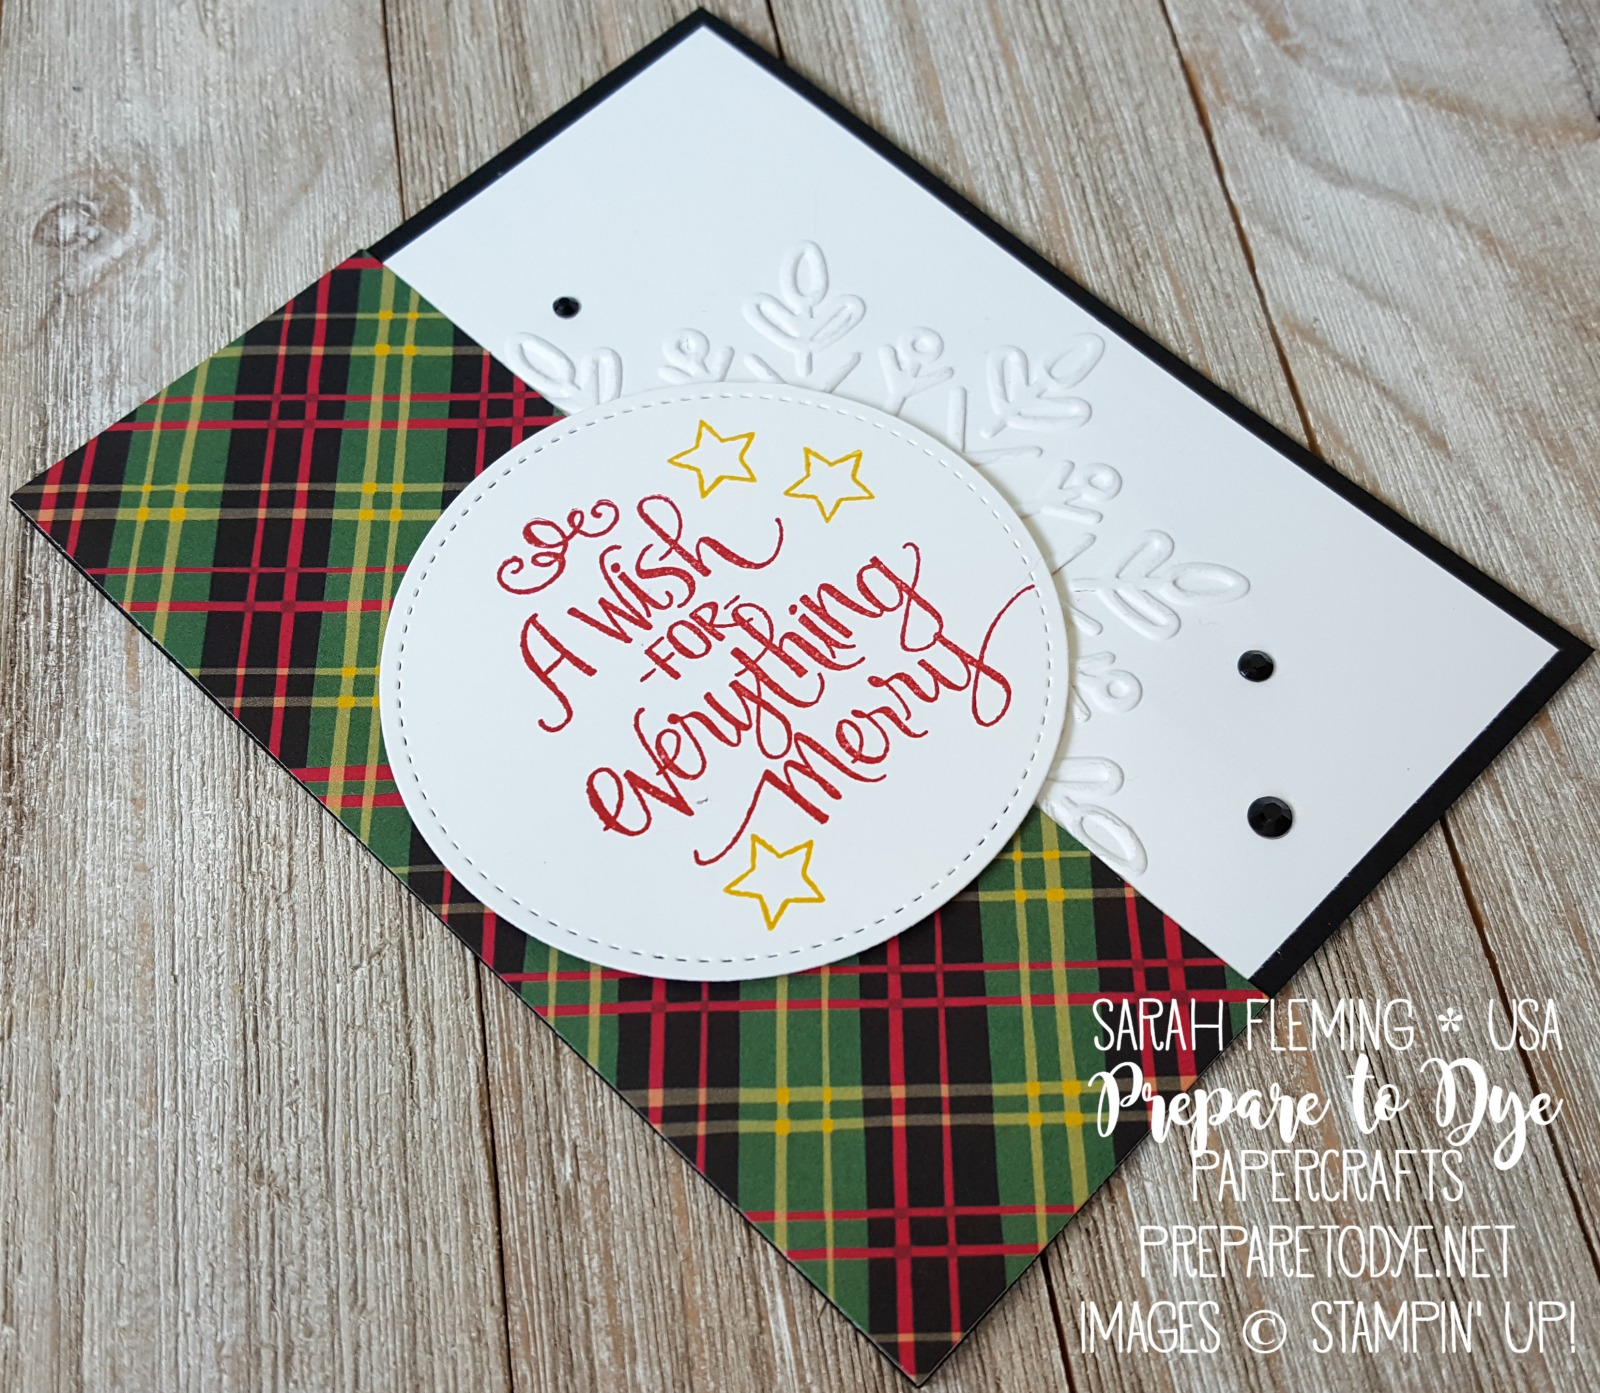 Stampin' Up! Ready for Christmas with Winter Wonder embossing folder & Christmas Around the World paper - easy handmade Christmas card - Sarah Fleming - Prepare to Dye Papercrafts